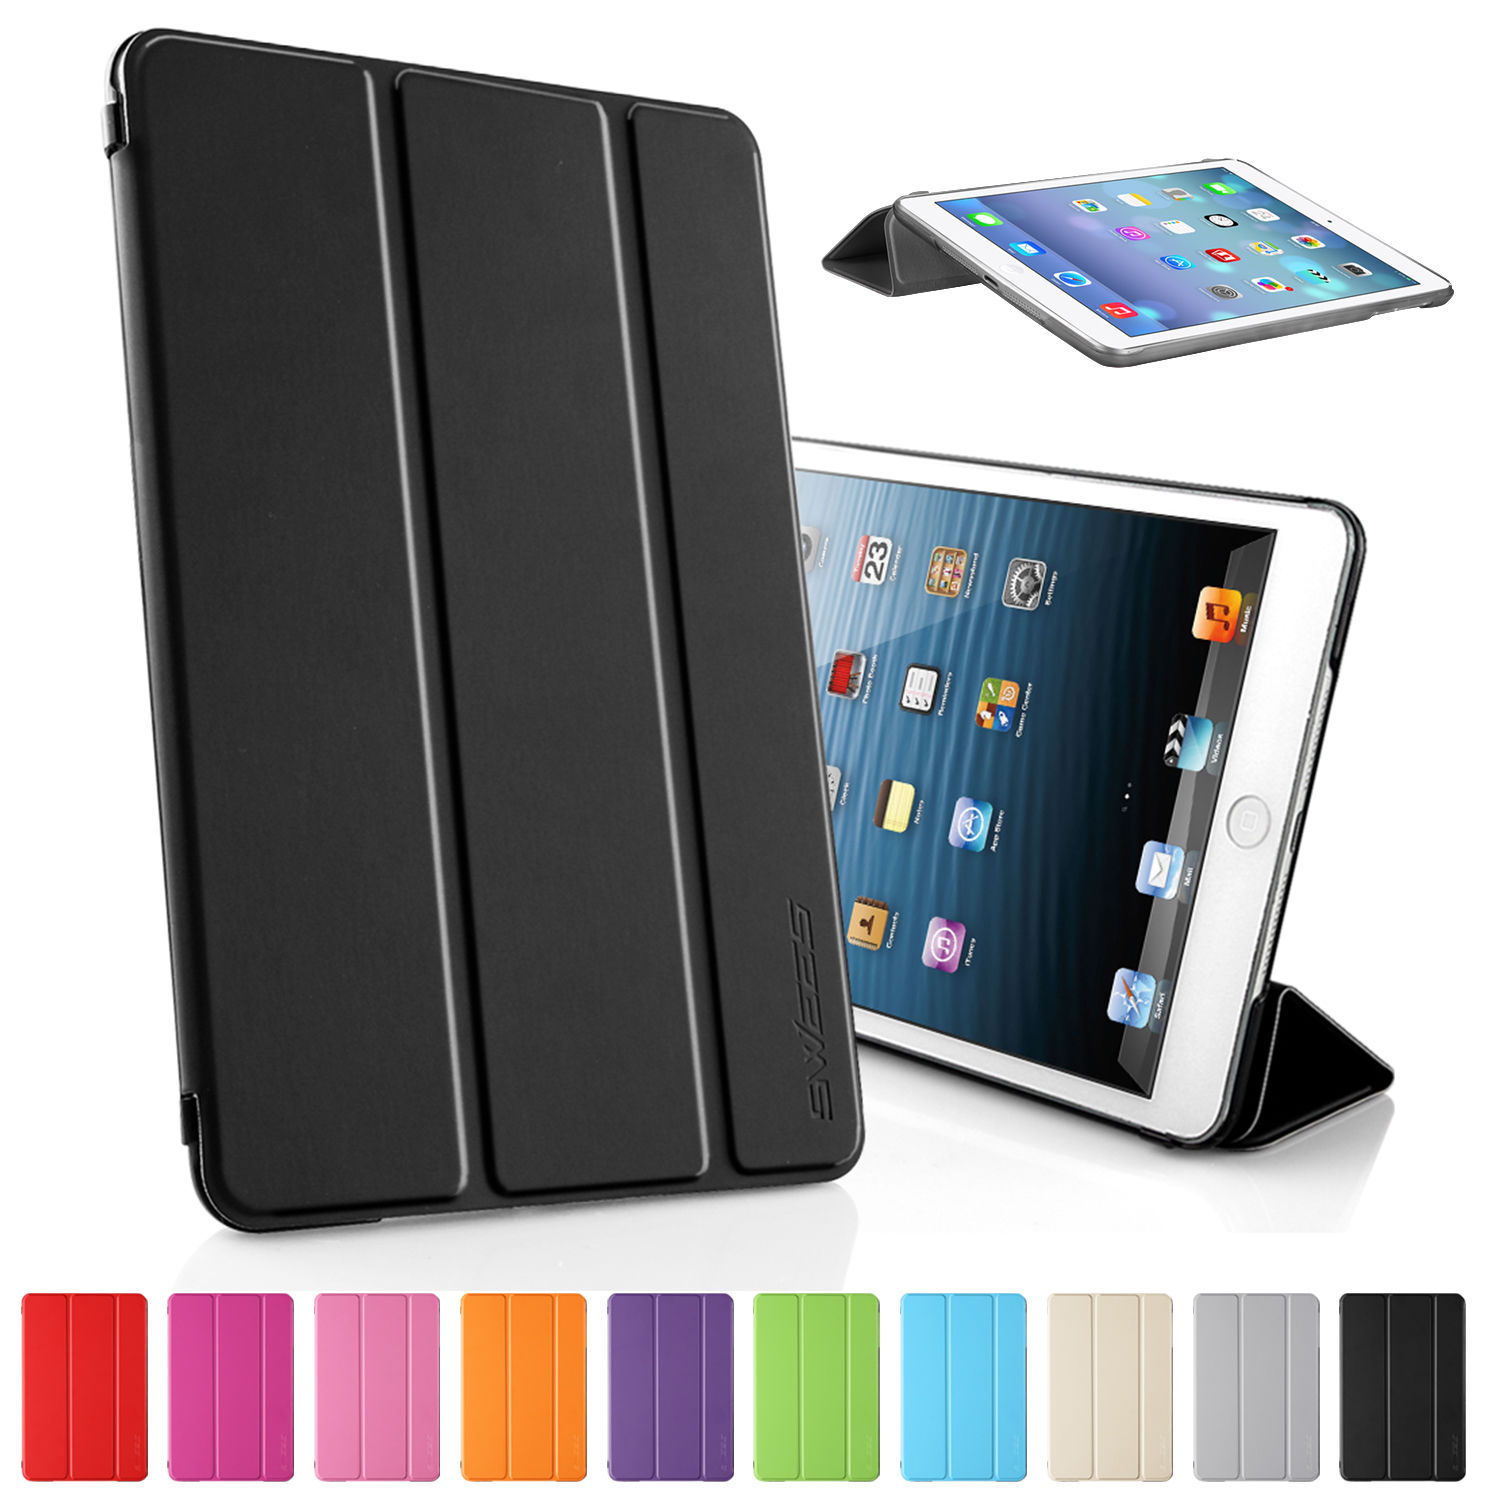 Flip Case For Apple iPad Mini 1/2/3 Tri-fold PU Leather Hybrid Ultra Slim Smart Tablet Cover PC Transparent Back  Retina Display for ipad mini4 cover high quality soft tpu rubber back case for ipad mini 4 silicone back cover semi transparent case shell skin